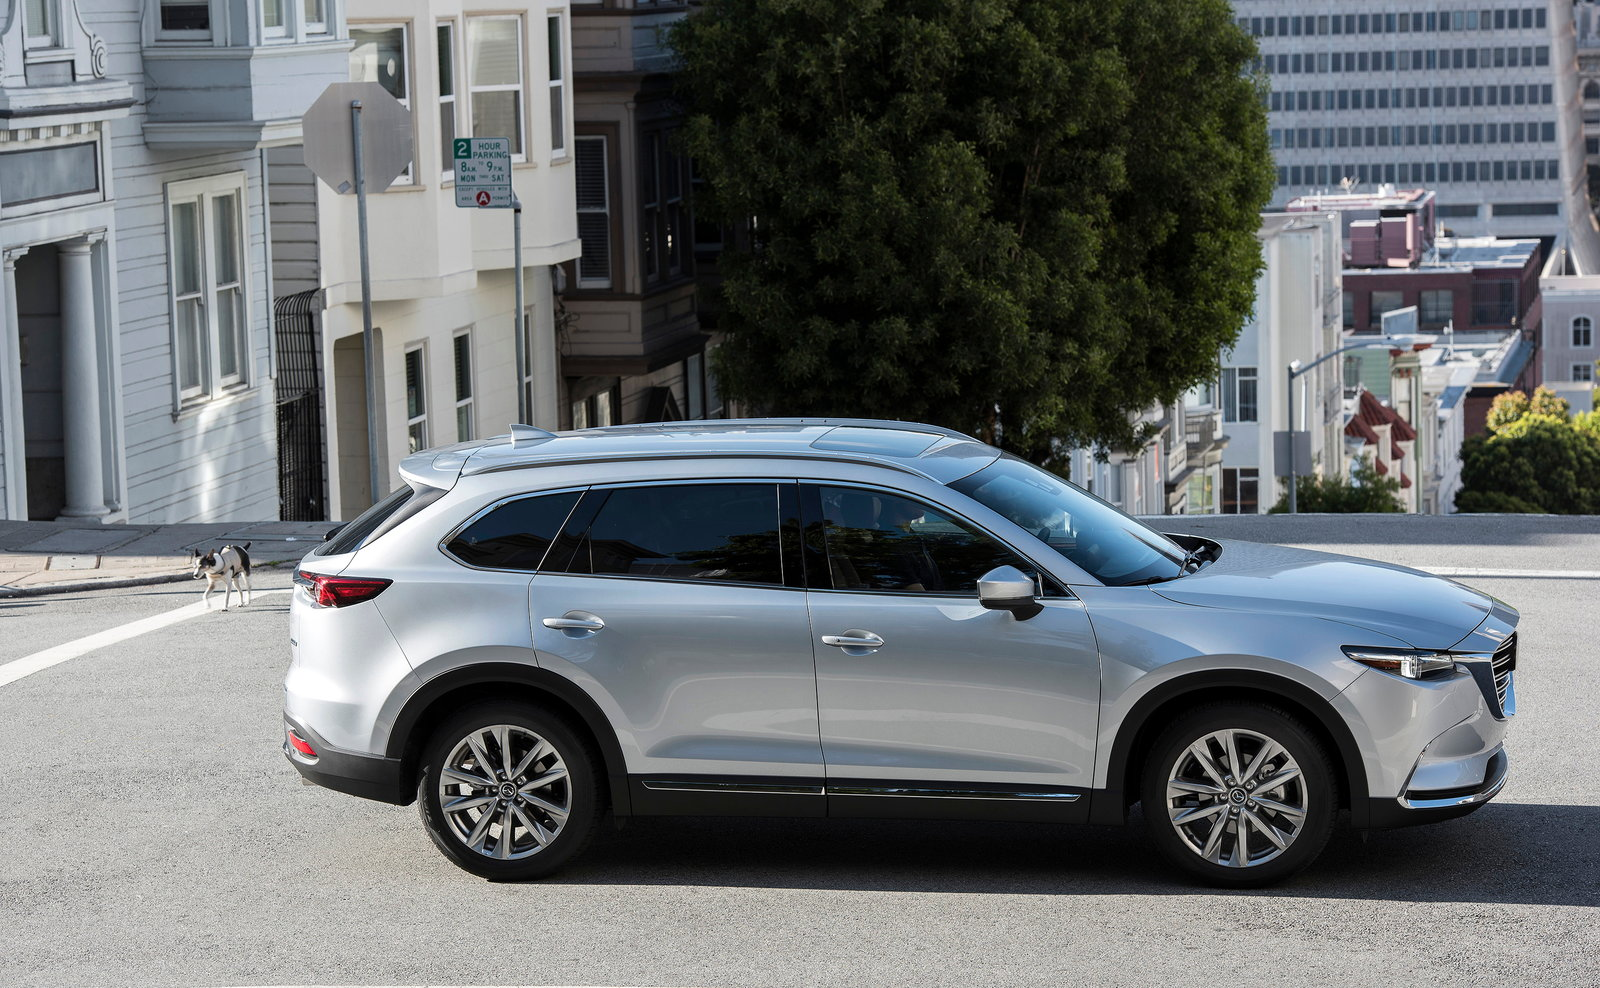 2018 mazda cx 9 deals prices incentives leases overview carsdirect. Black Bedroom Furniture Sets. Home Design Ideas